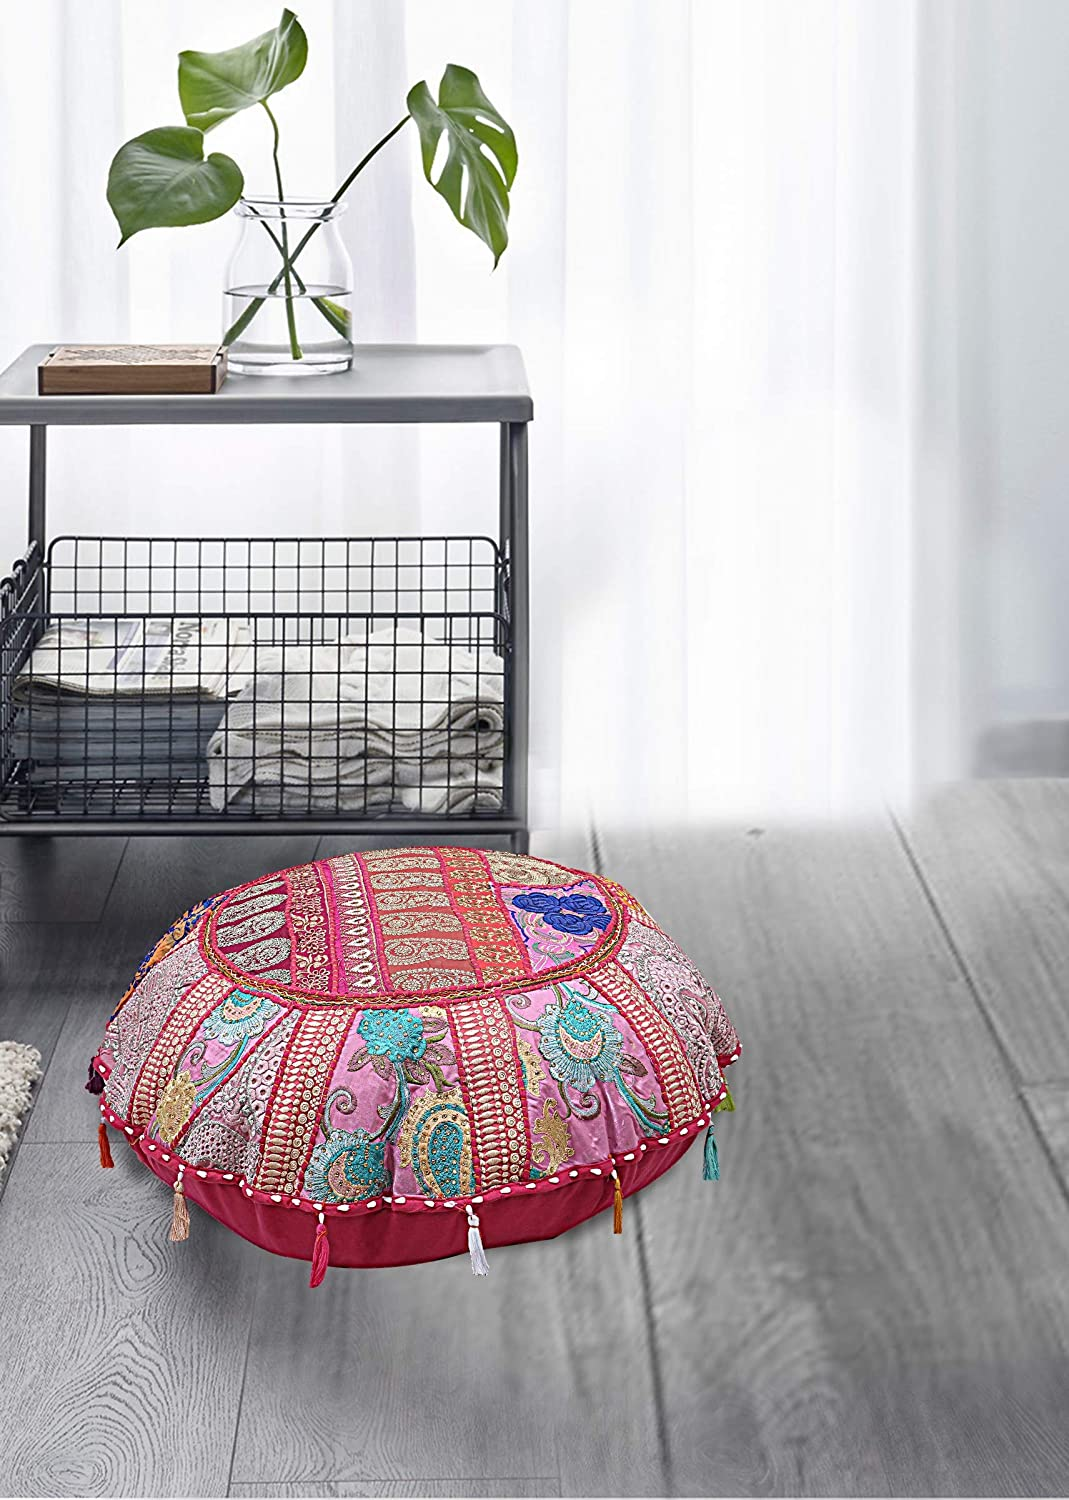 THE ART BOX Indian Vintage NEW before selling ☆ Round Super beauty product restock quality top Patchwork Ott 32inch Pouf Cover